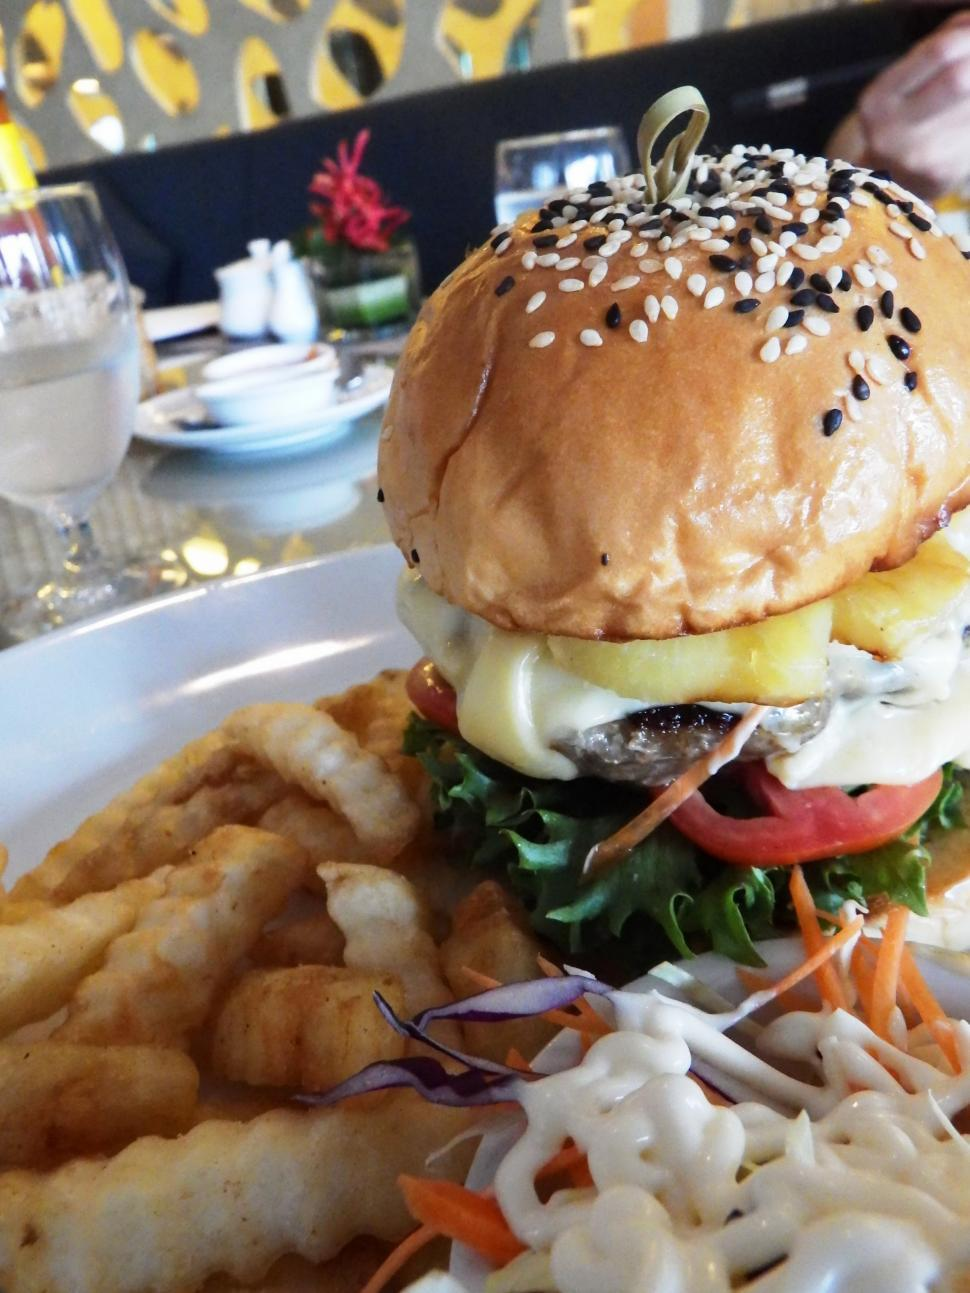 Download Free Stock HD Photo of Cheese Burger on Sesame Seed Bun and fries Online